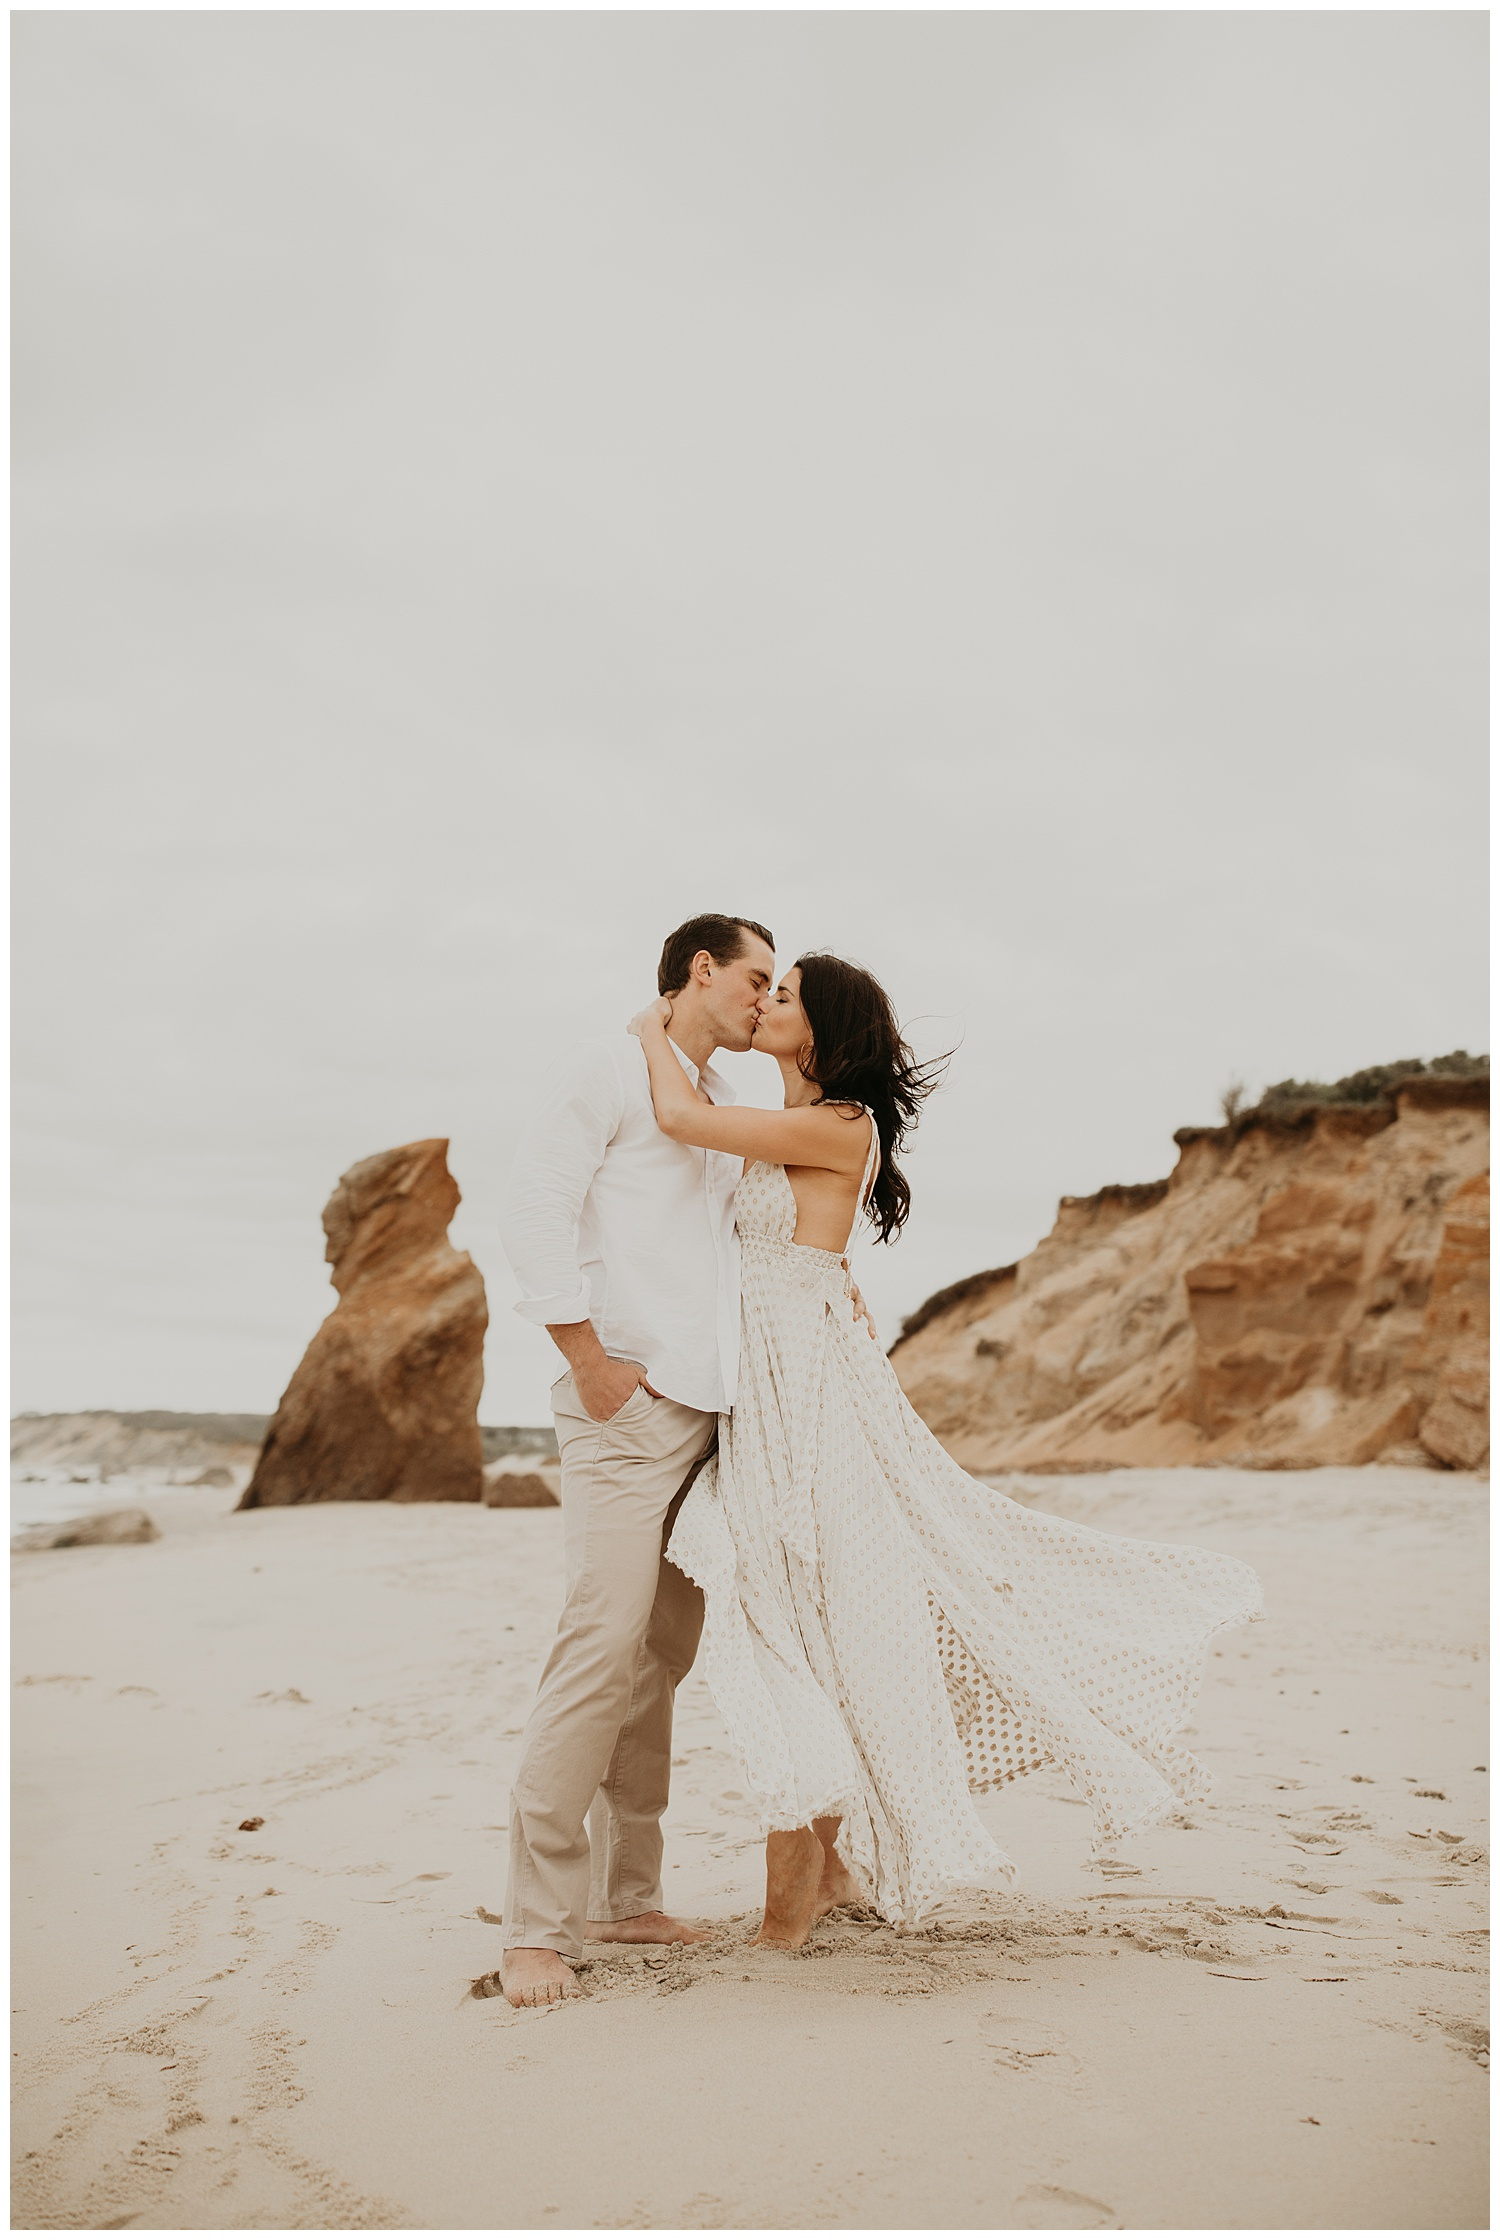 tim-olivia-beach-boho-engagement-session-marthas-vineyard-massachusetts05.jpg